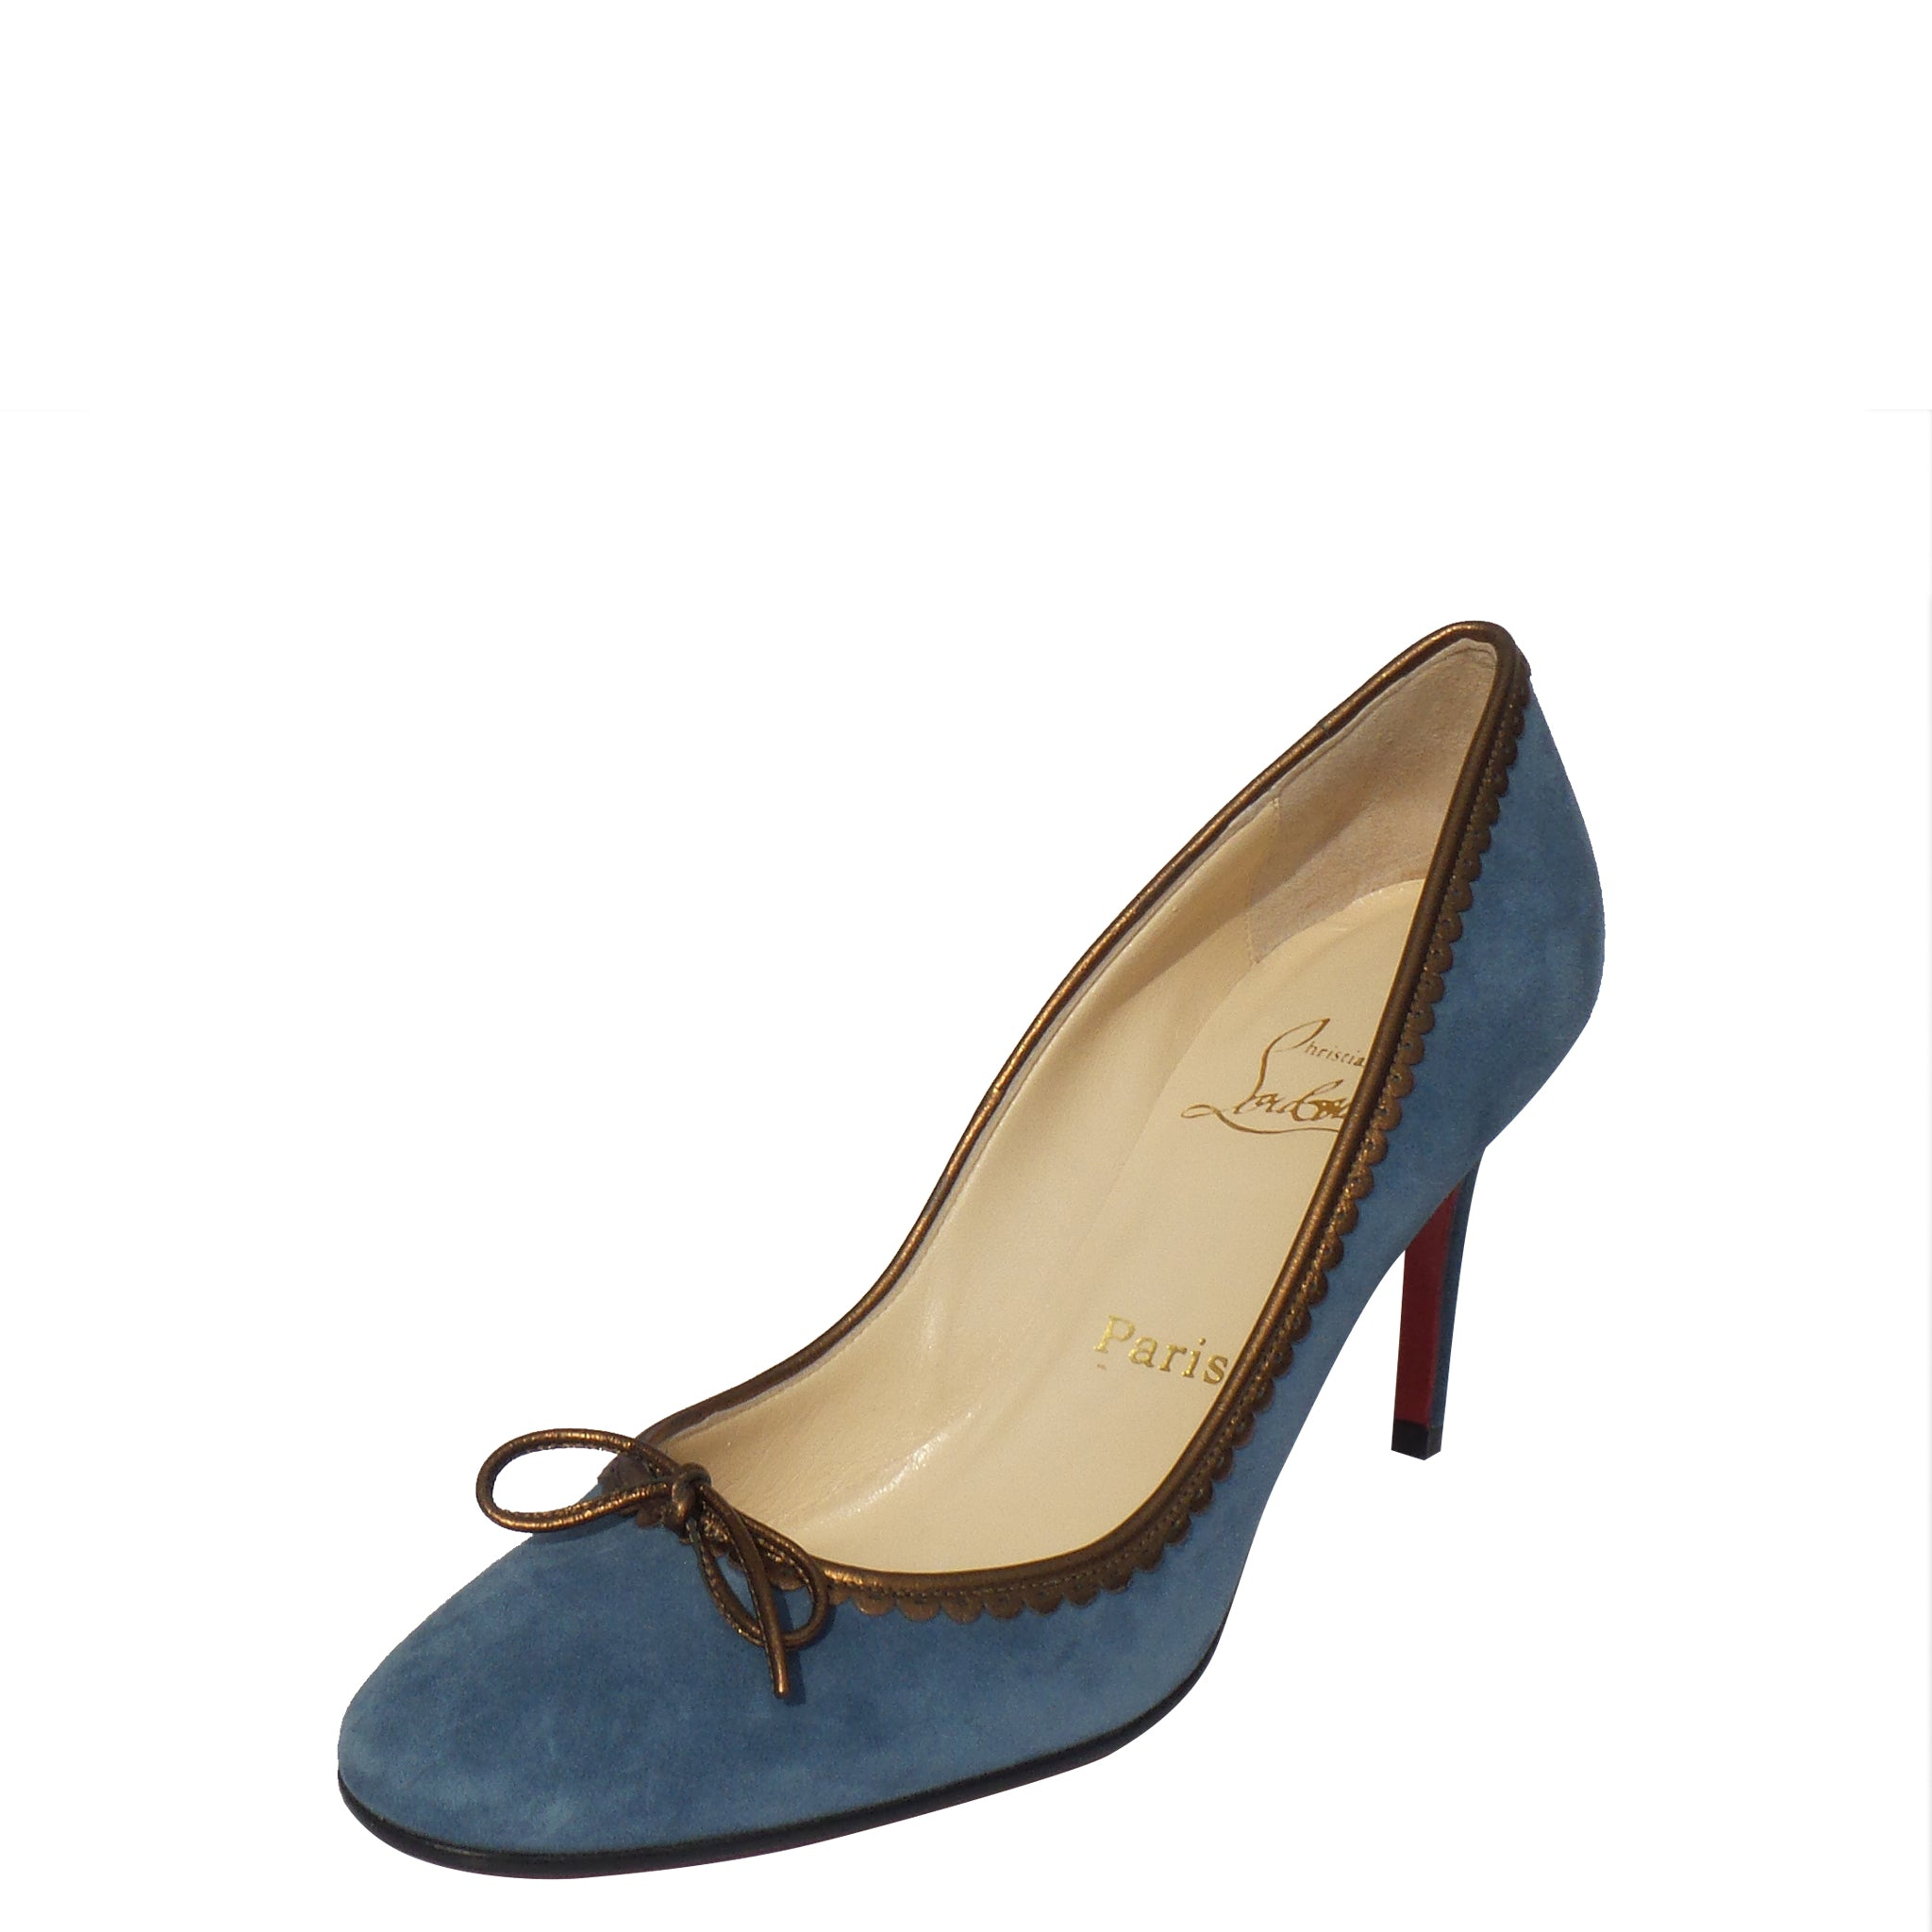 sports shoes 32f99 d30cf CHRISTIAN LOUBOUTIN Slate Blue Suede Bronze Leather Trim Bow Pumps 38.5